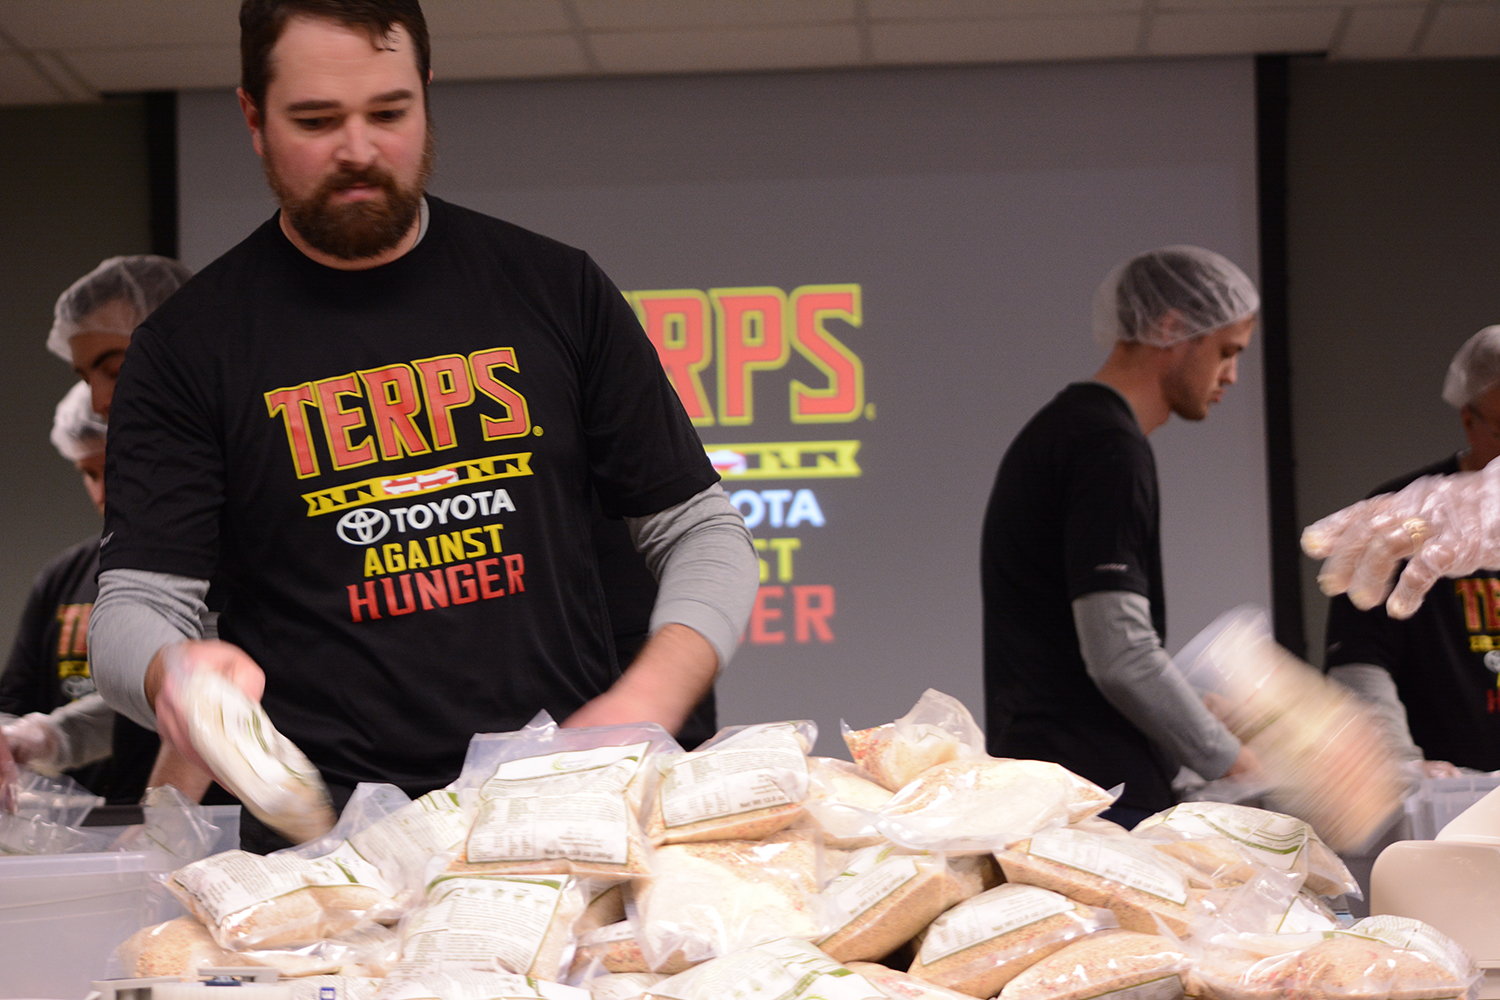 Glen Burnie East: Toyota office teams up with Terps to combat hunger